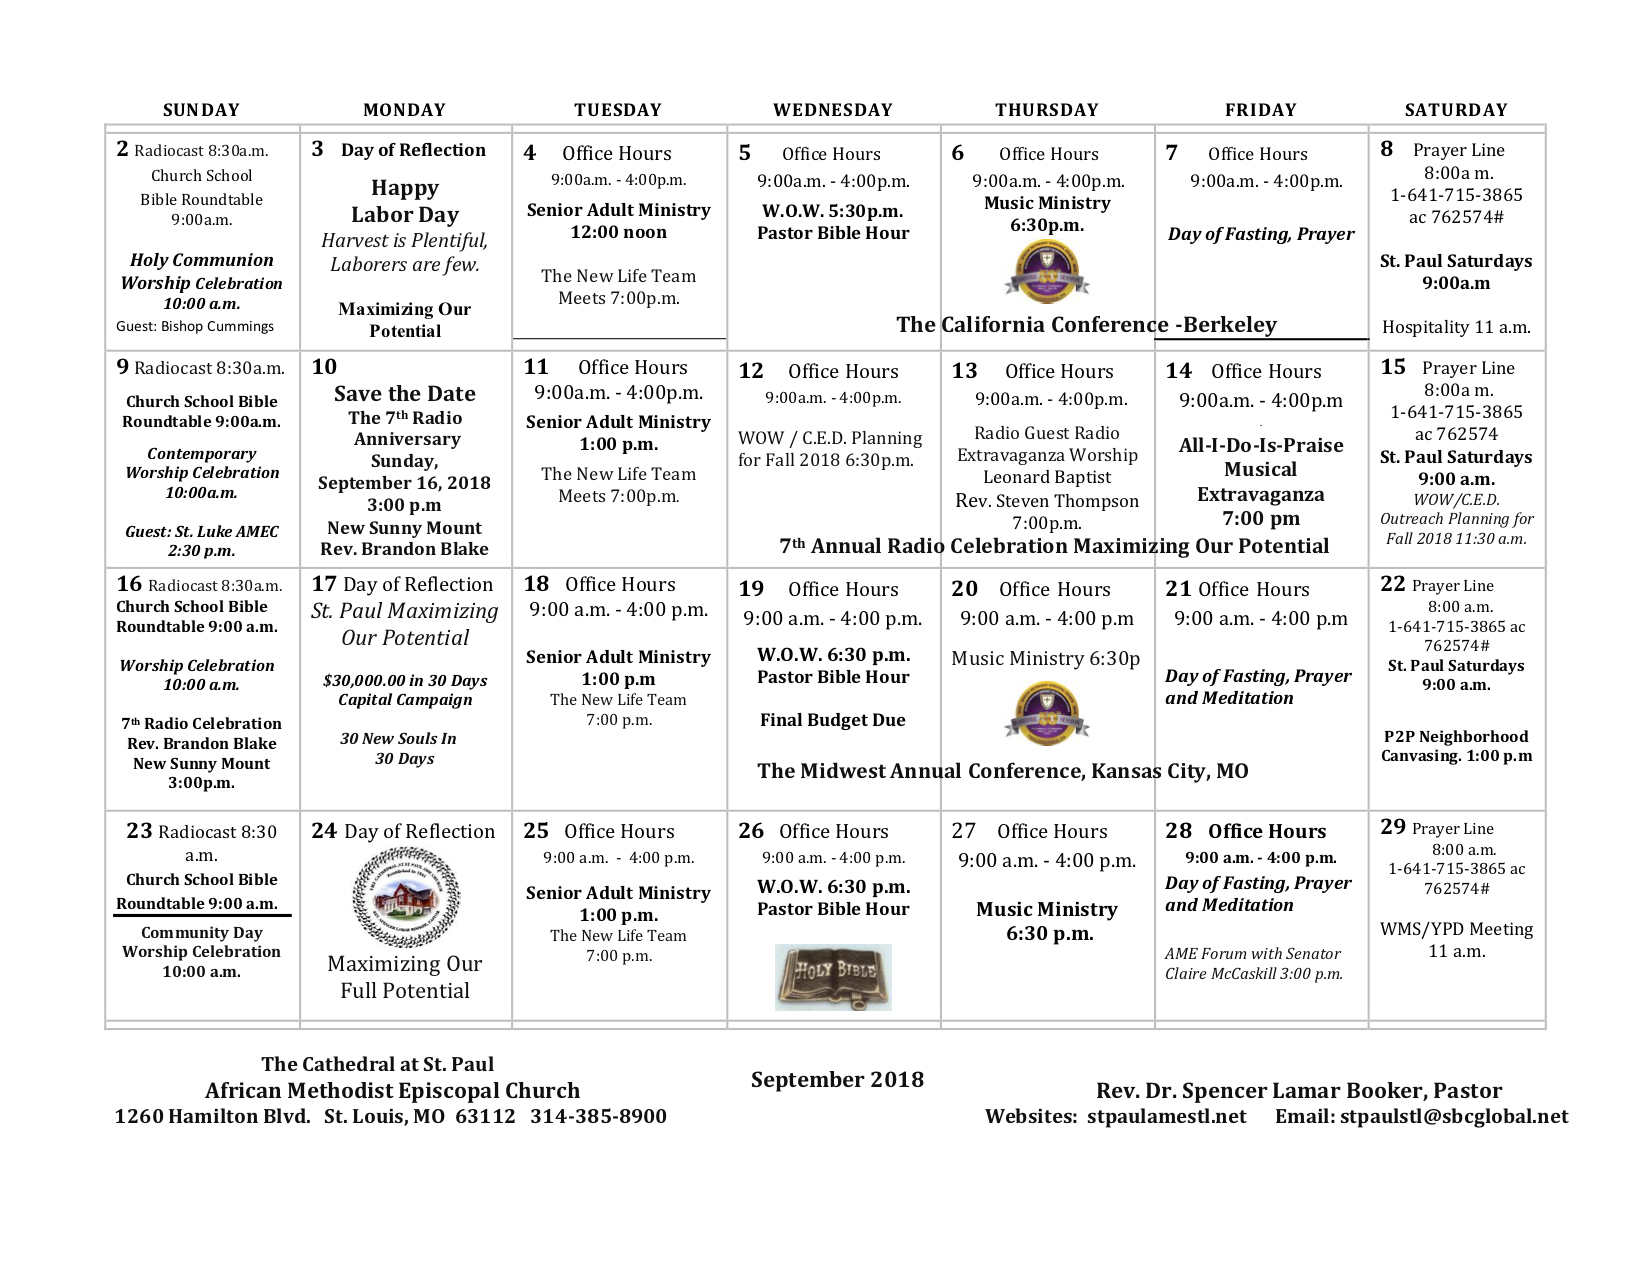 The Cathedral August-Sept 2018 III Calendar.jpg